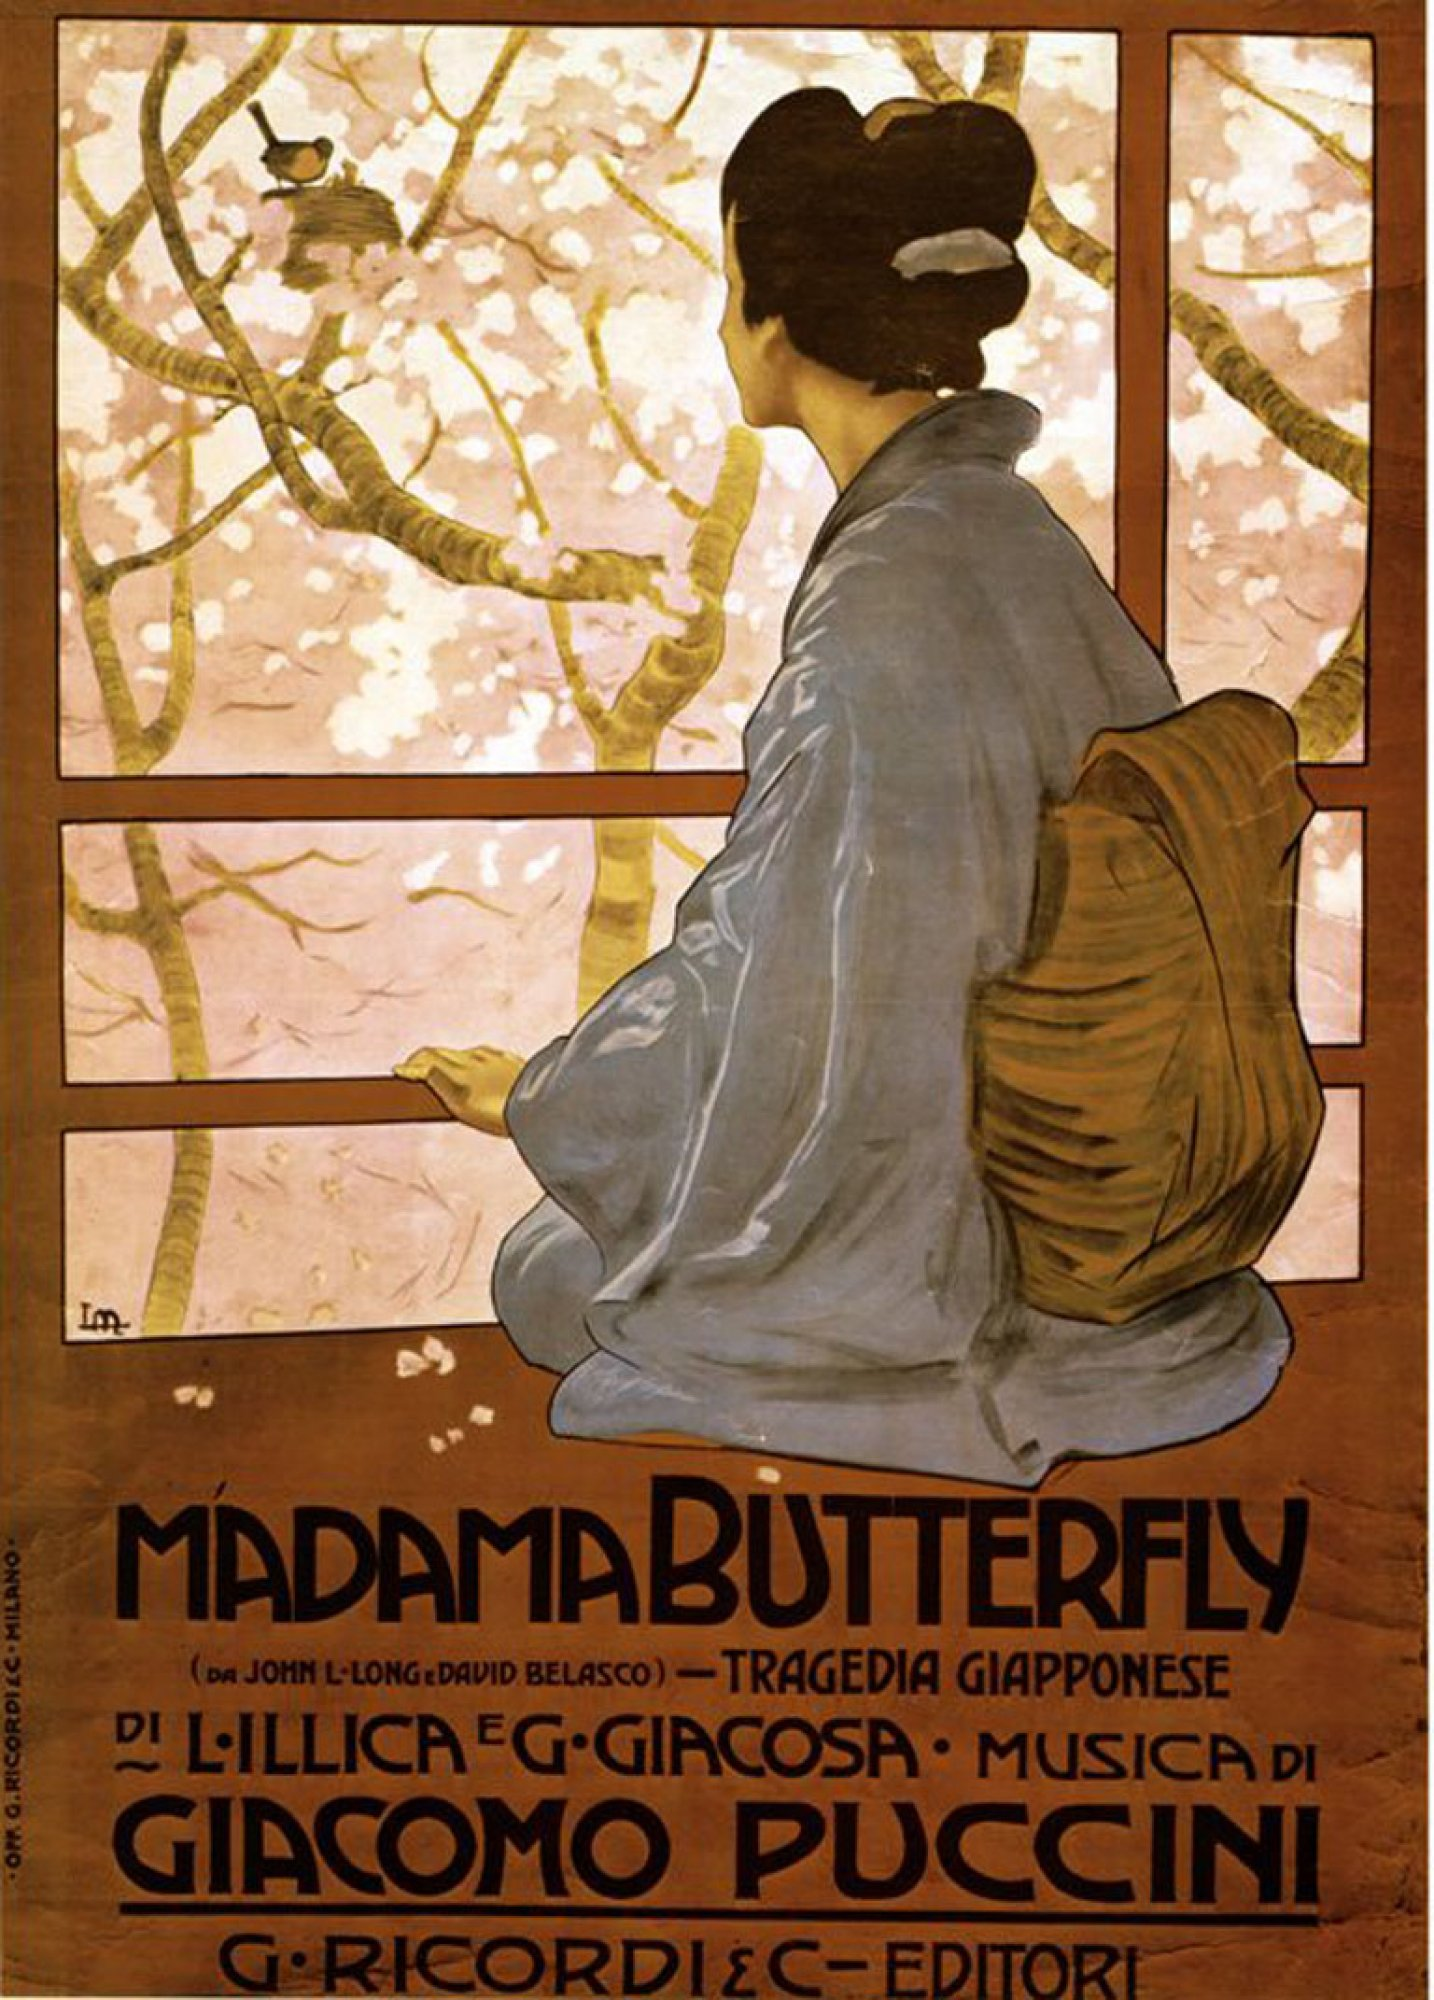 Madama Butterfly by Giacomo Puccini - 2018